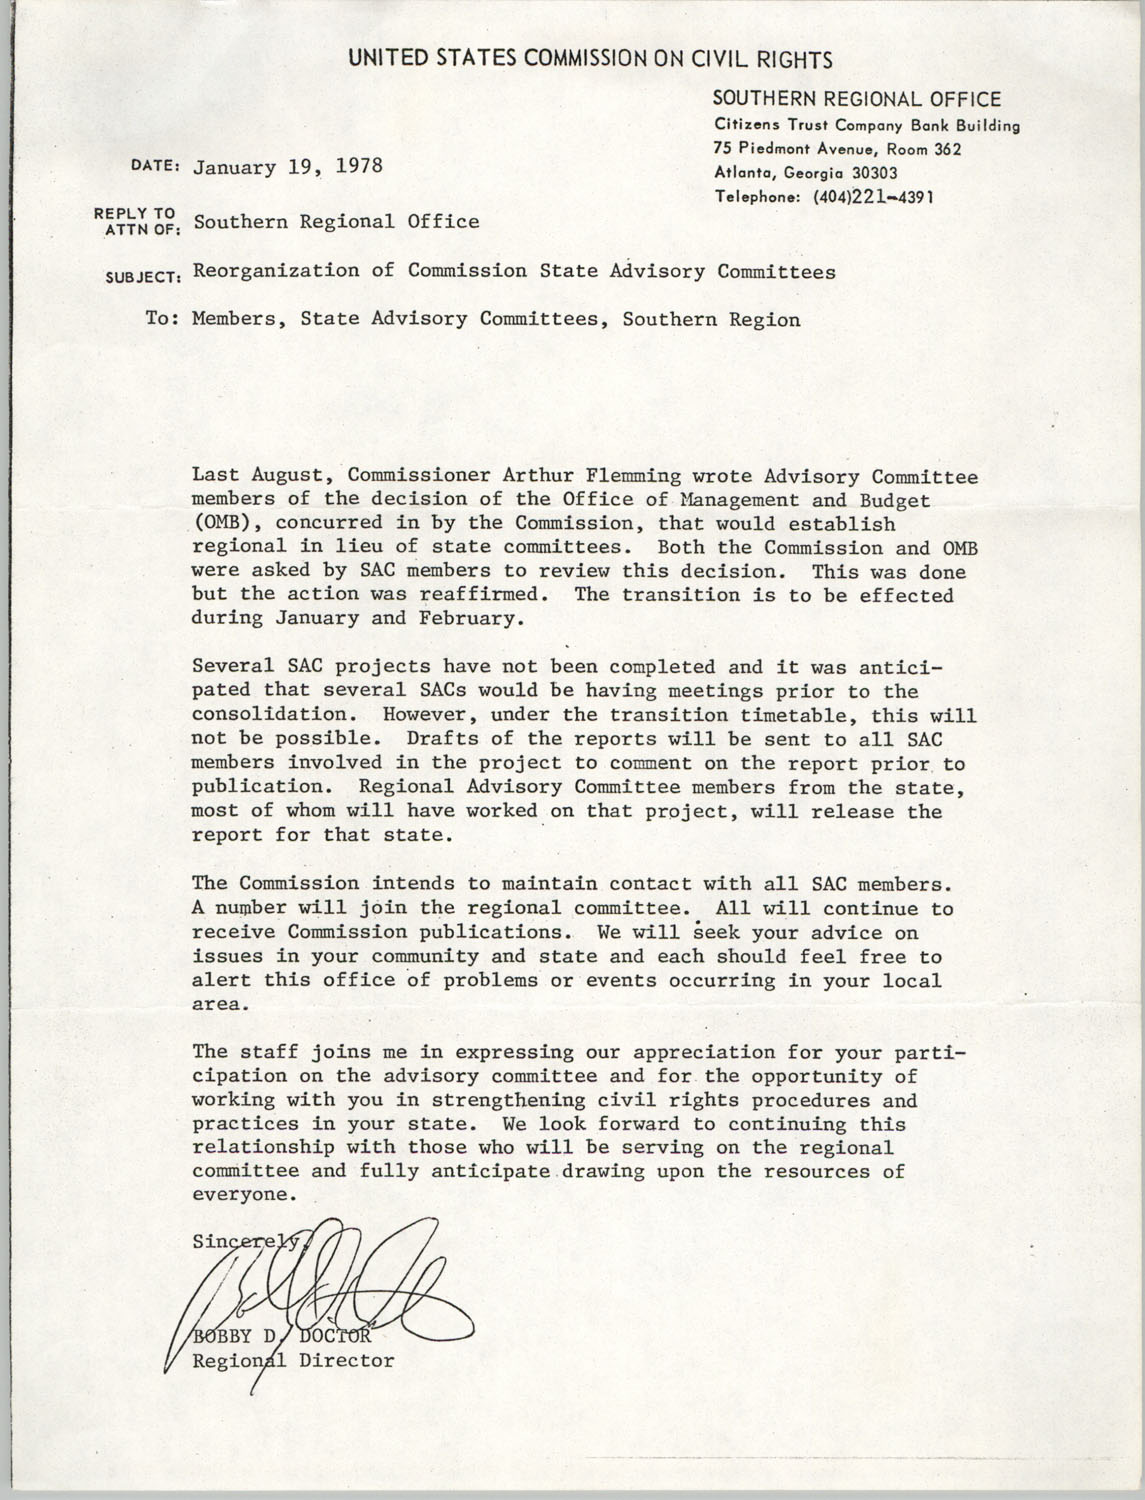 Memorandum from Bobby D. Doctor to State Advisory Committee members, Southern Region, United States Commission on Civil Rights, January 19, 1978